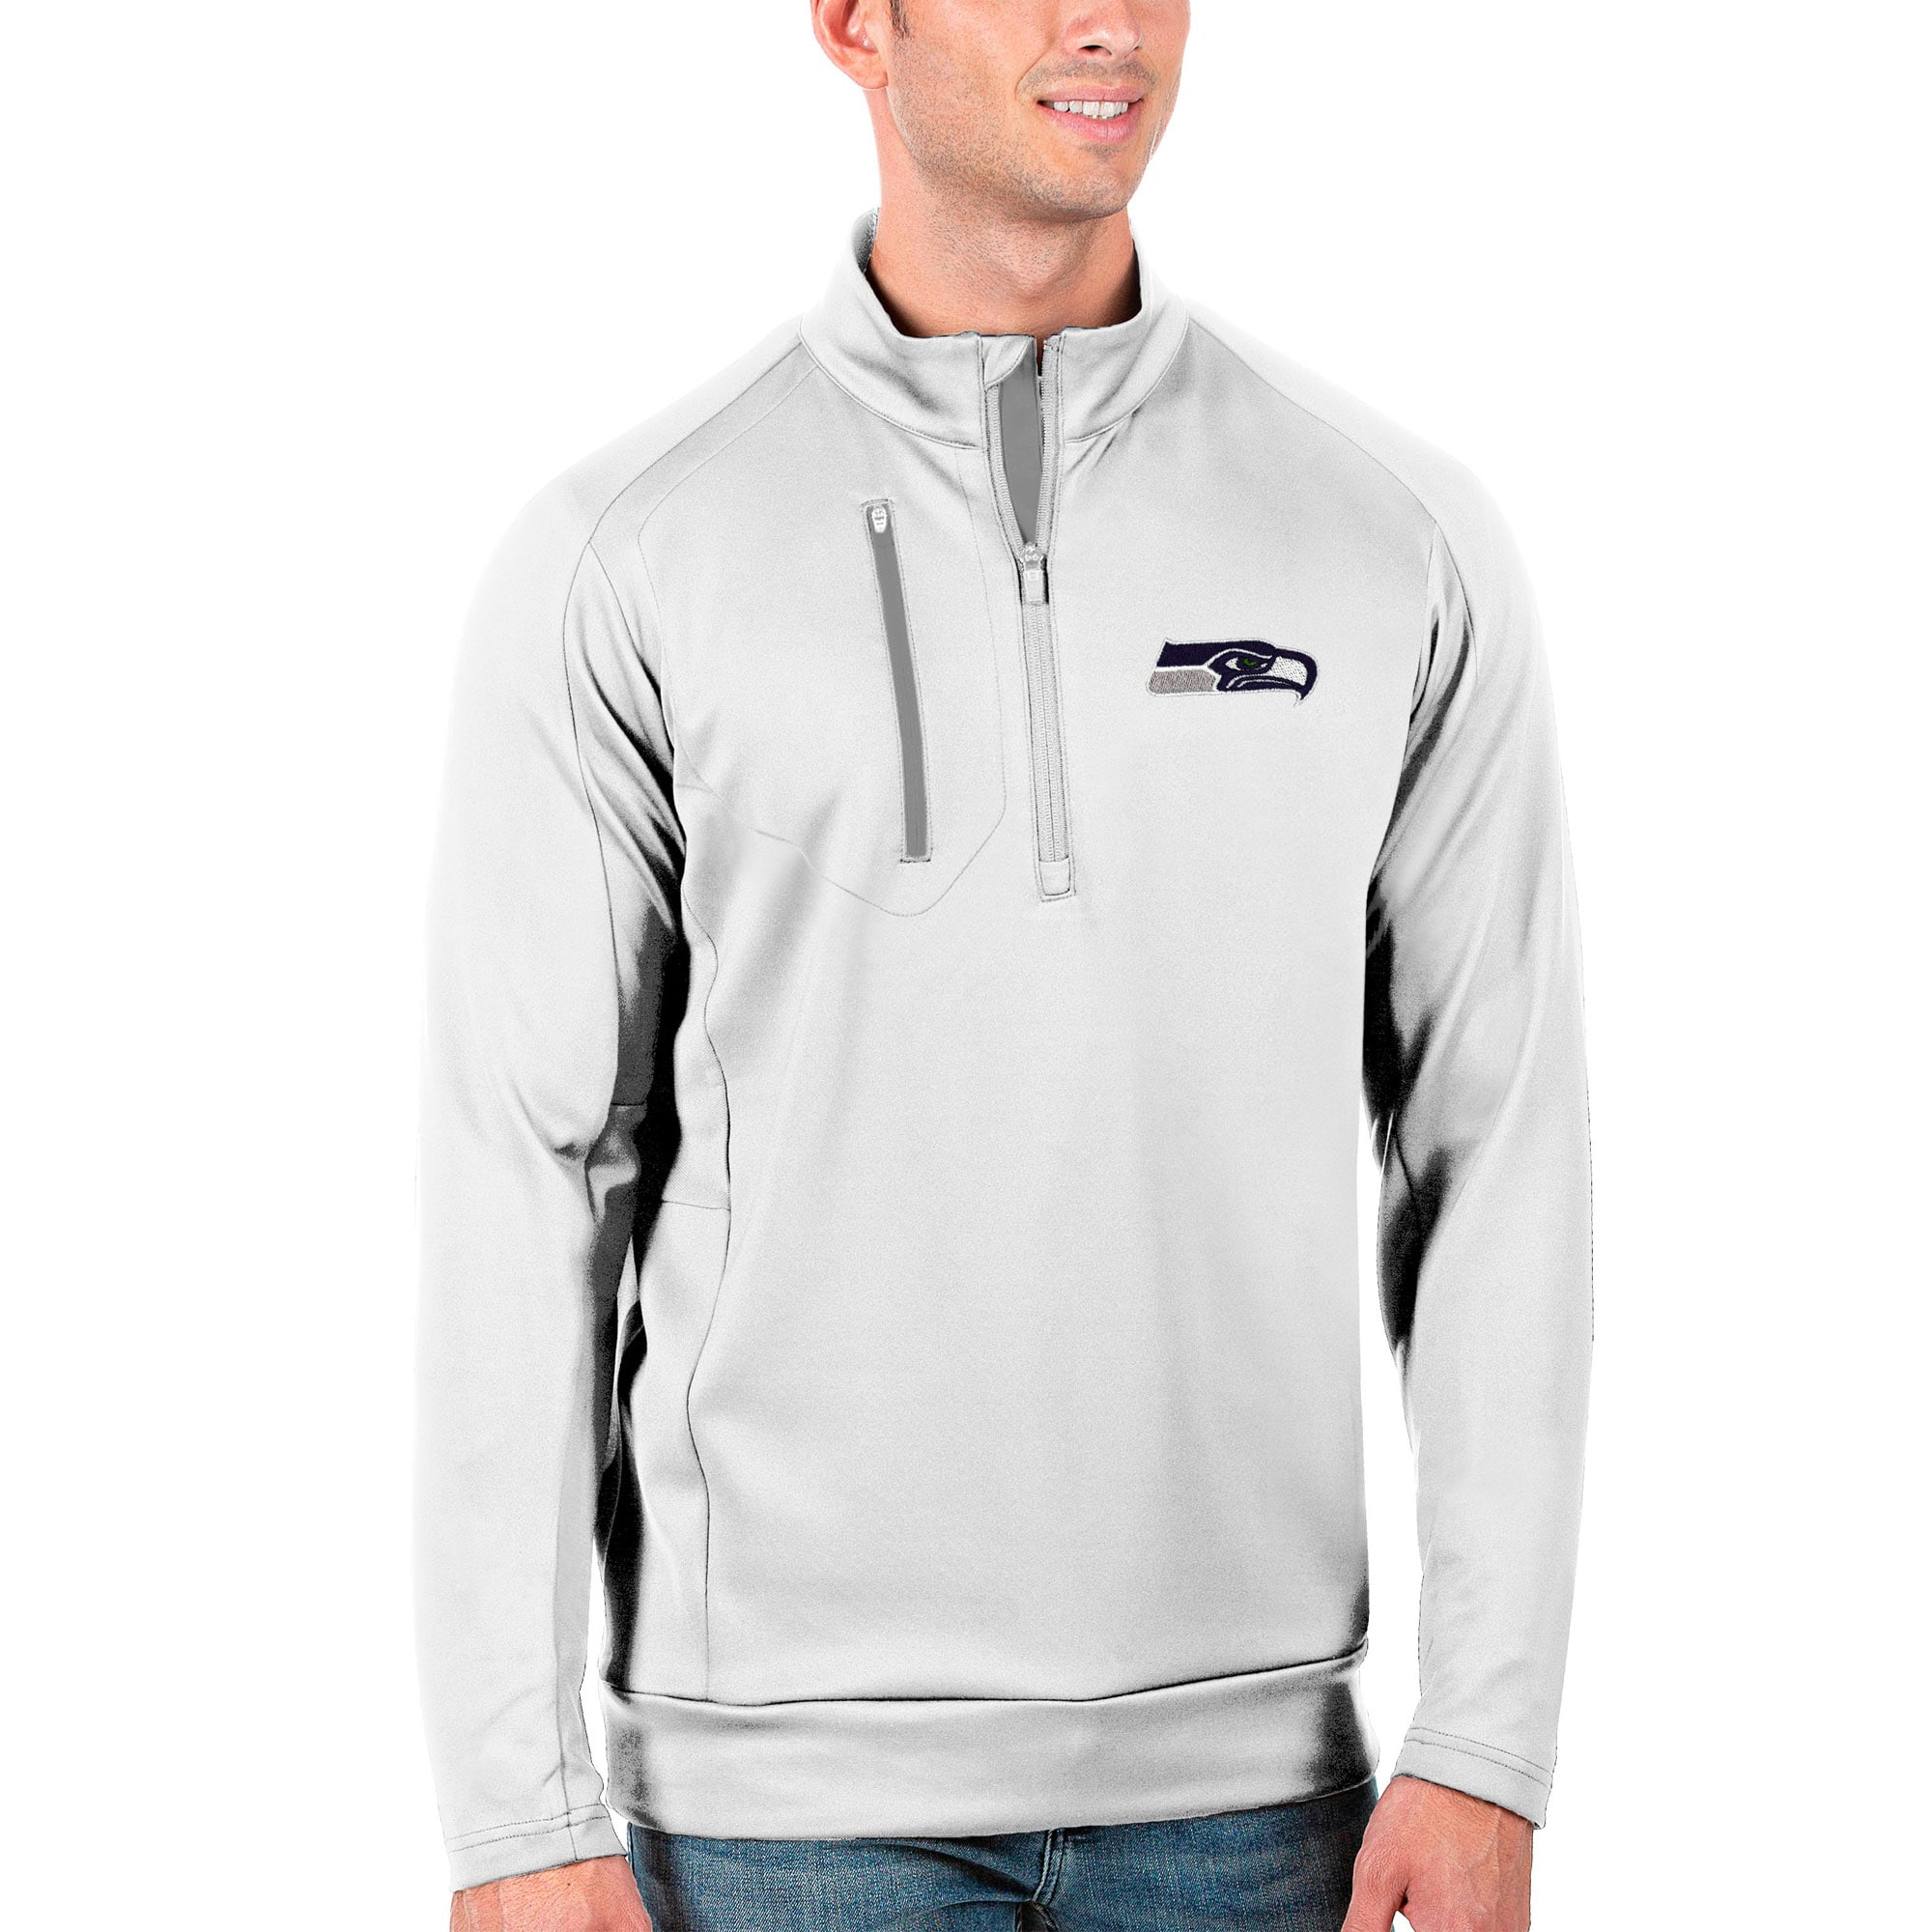 Seattle Seahawks Antigua Generation Quarter-Zip Pullover Jacket - White/Silver